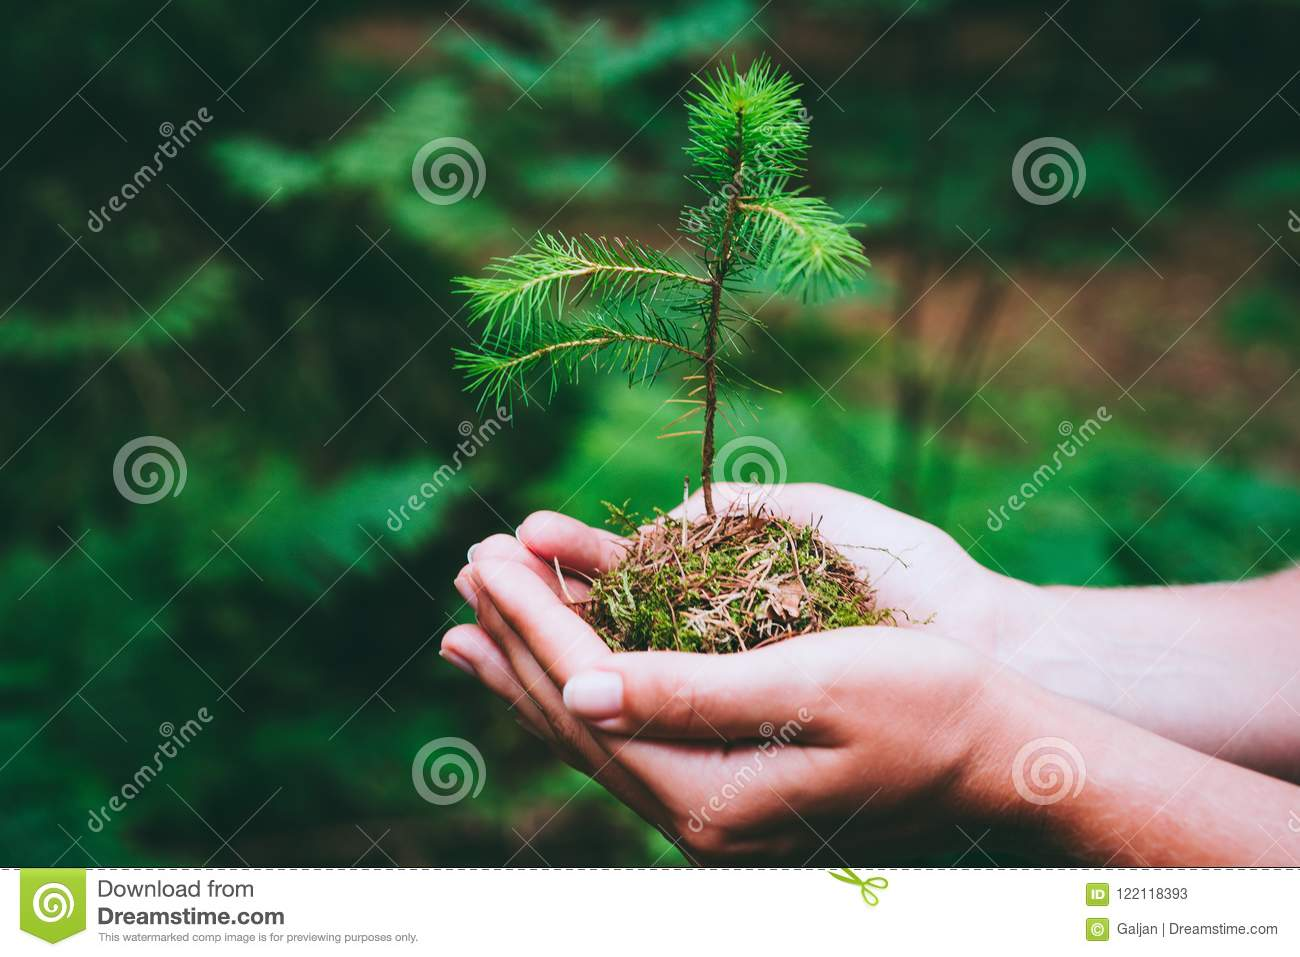 Female hand holding sprout wilde pine tree in nature green forest. Earth Day save environment concept. Growing seedling